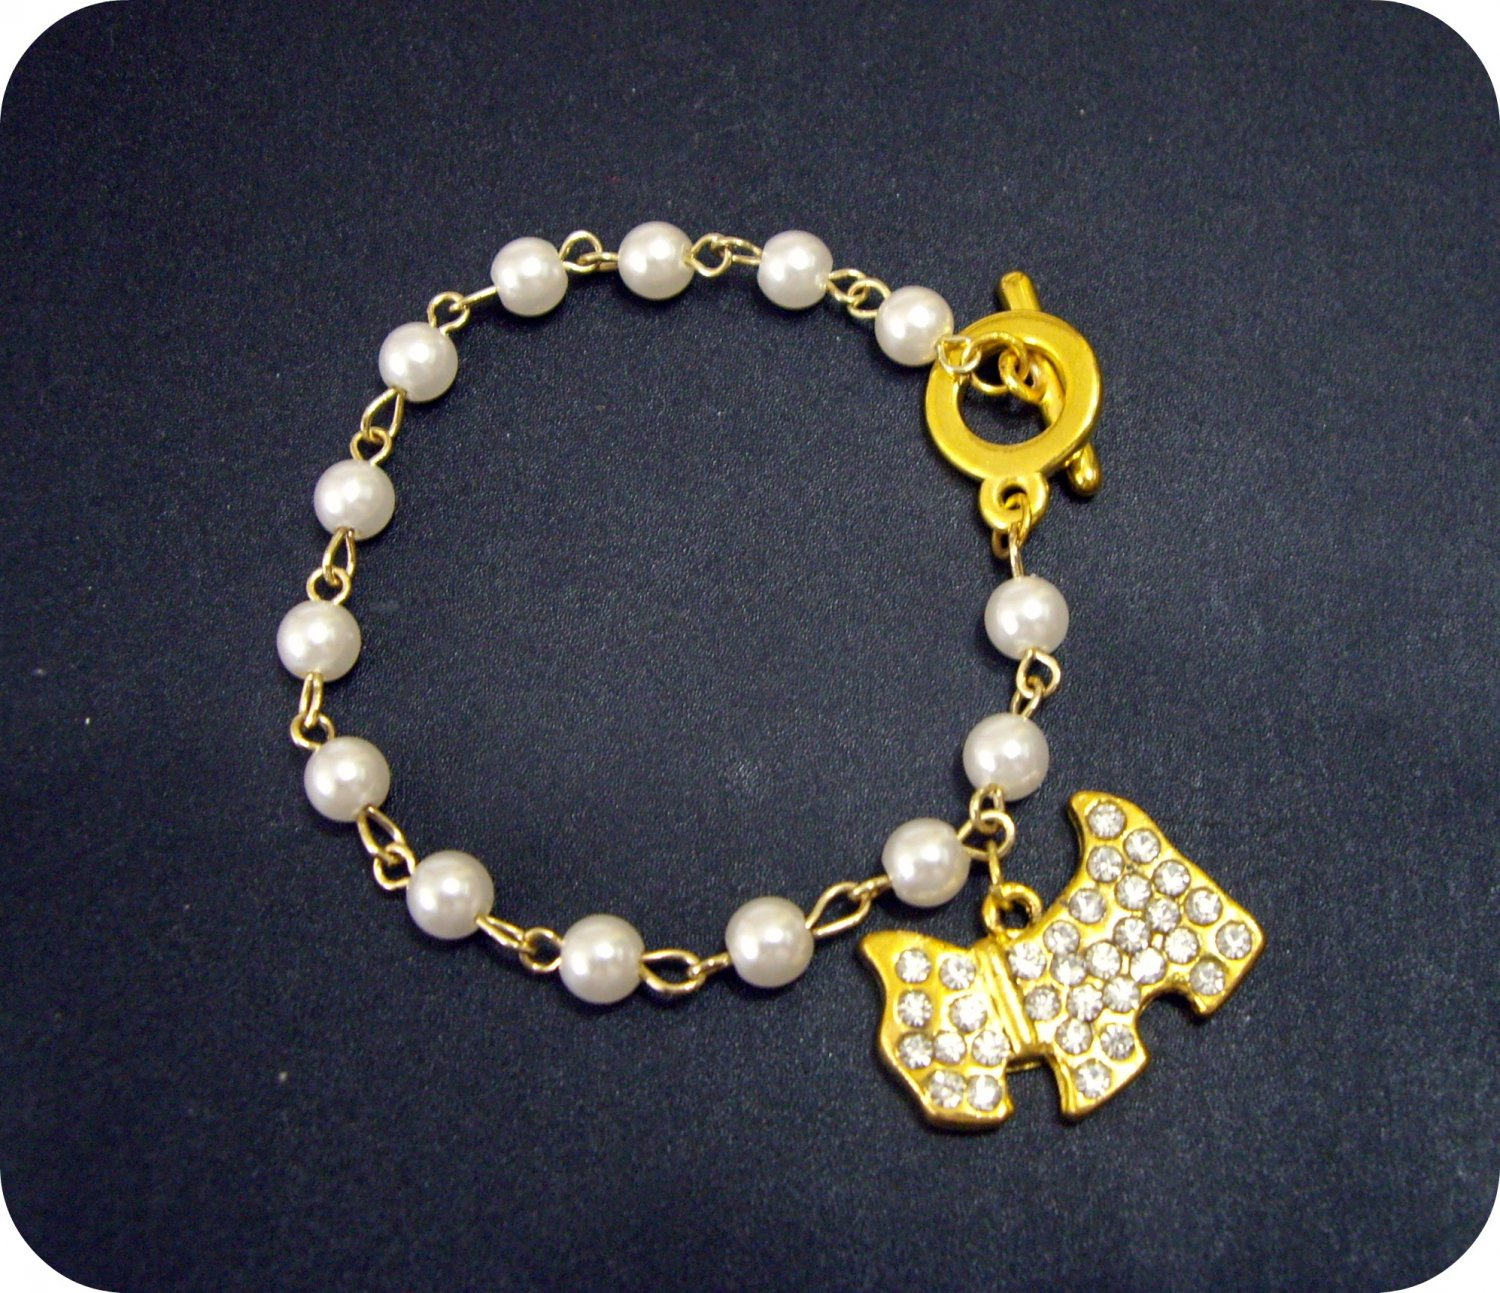 Very Cute, Lovely Crystal & Faux Pearls Doggy/Puppy Bracelets